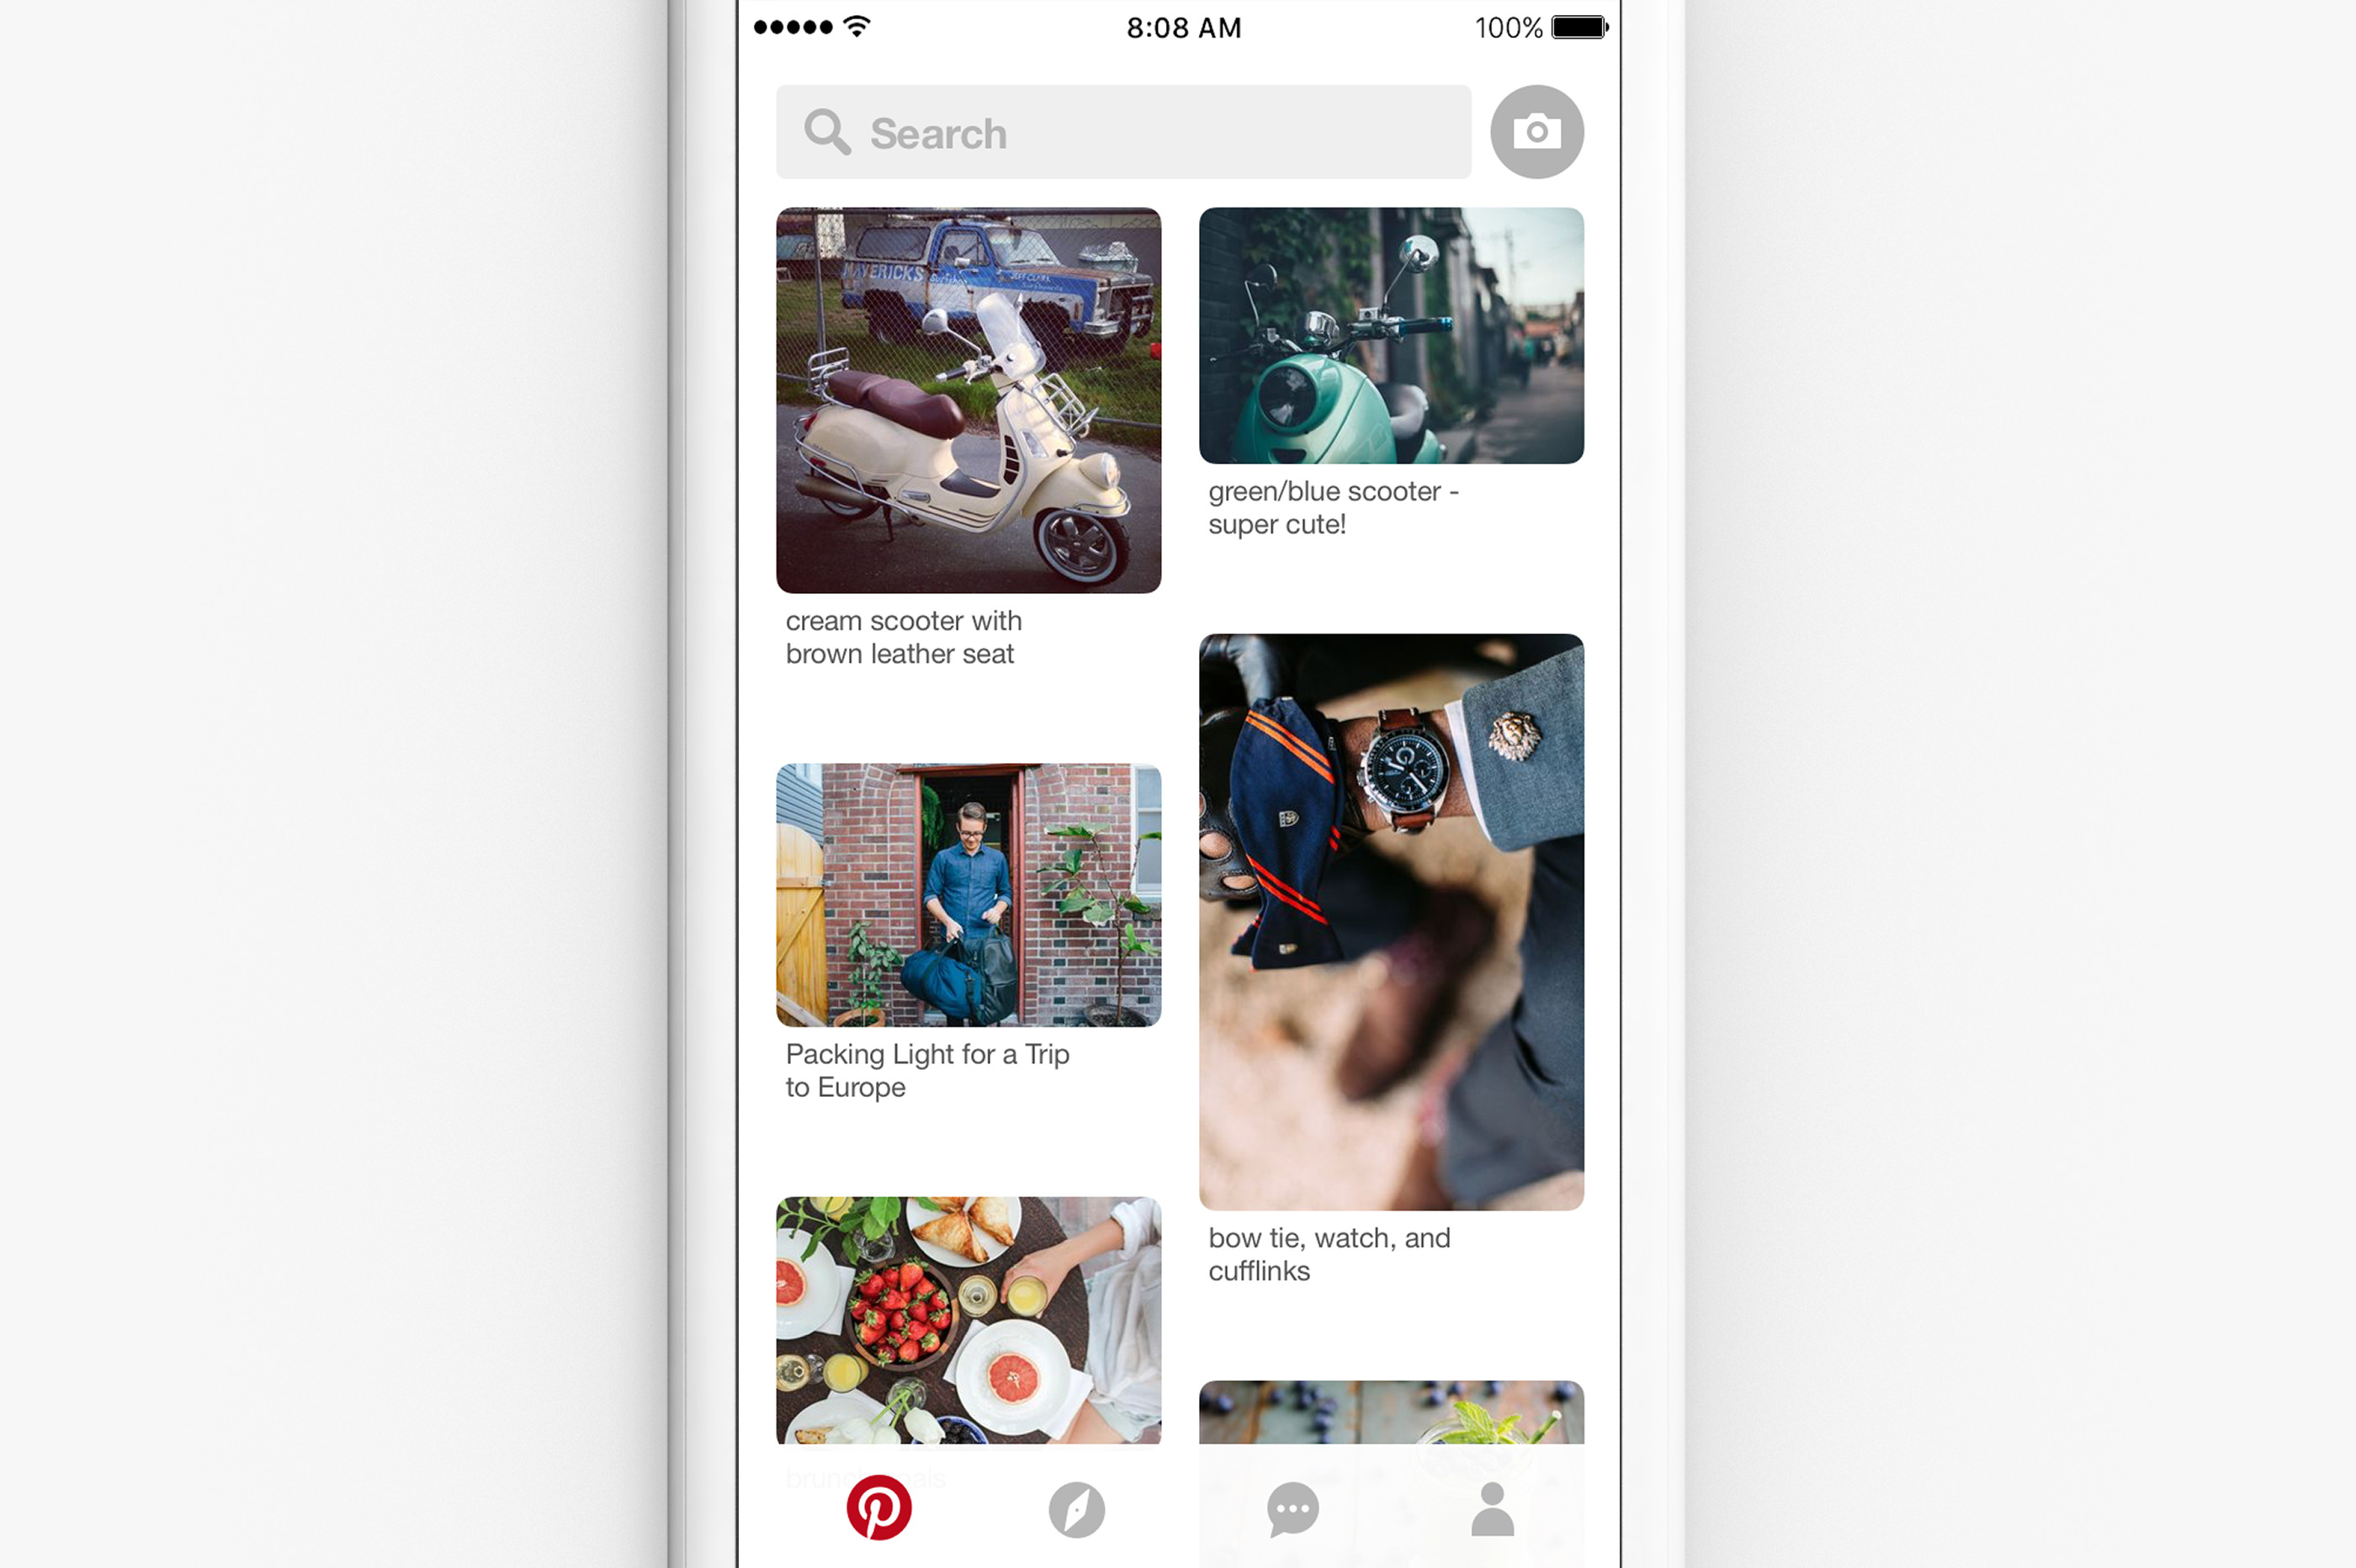 Pinterest Adds Search and Lens to Front Page, Proves New Stats on Search Volume | Social Media Today